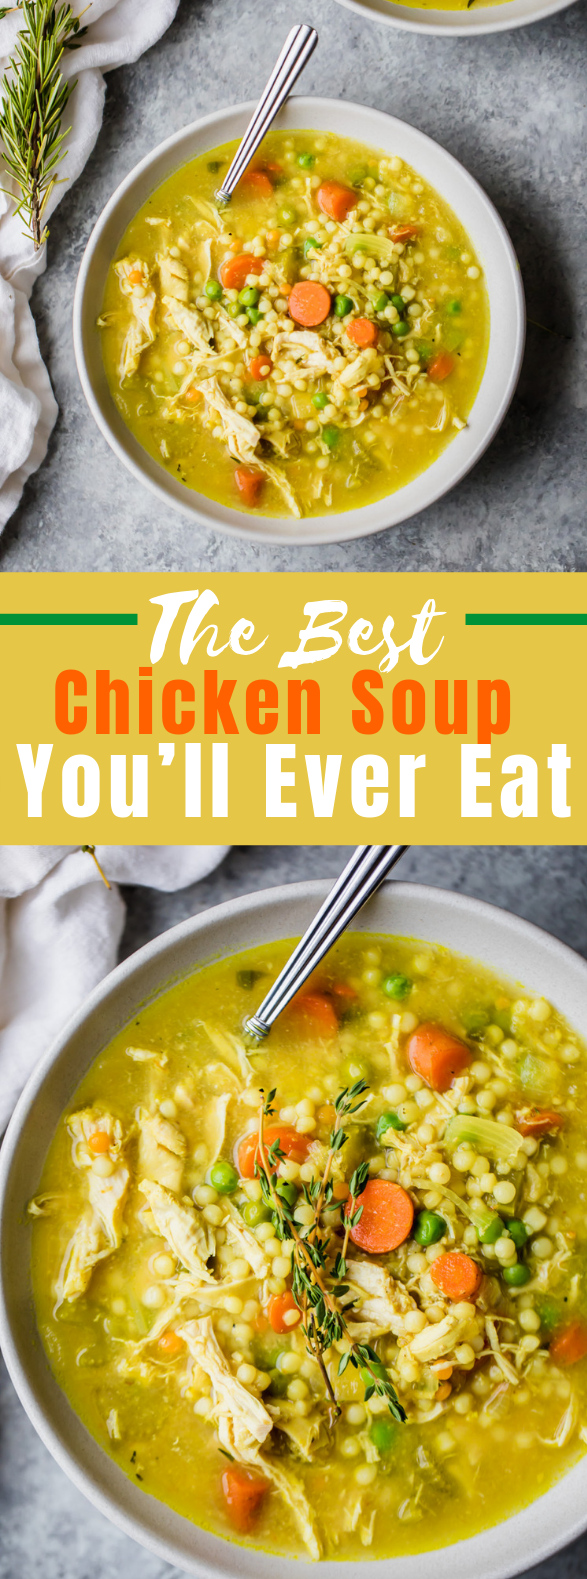 The Best Chicken Soup You'll Ever Eat #healthyfood #antiinflammatory